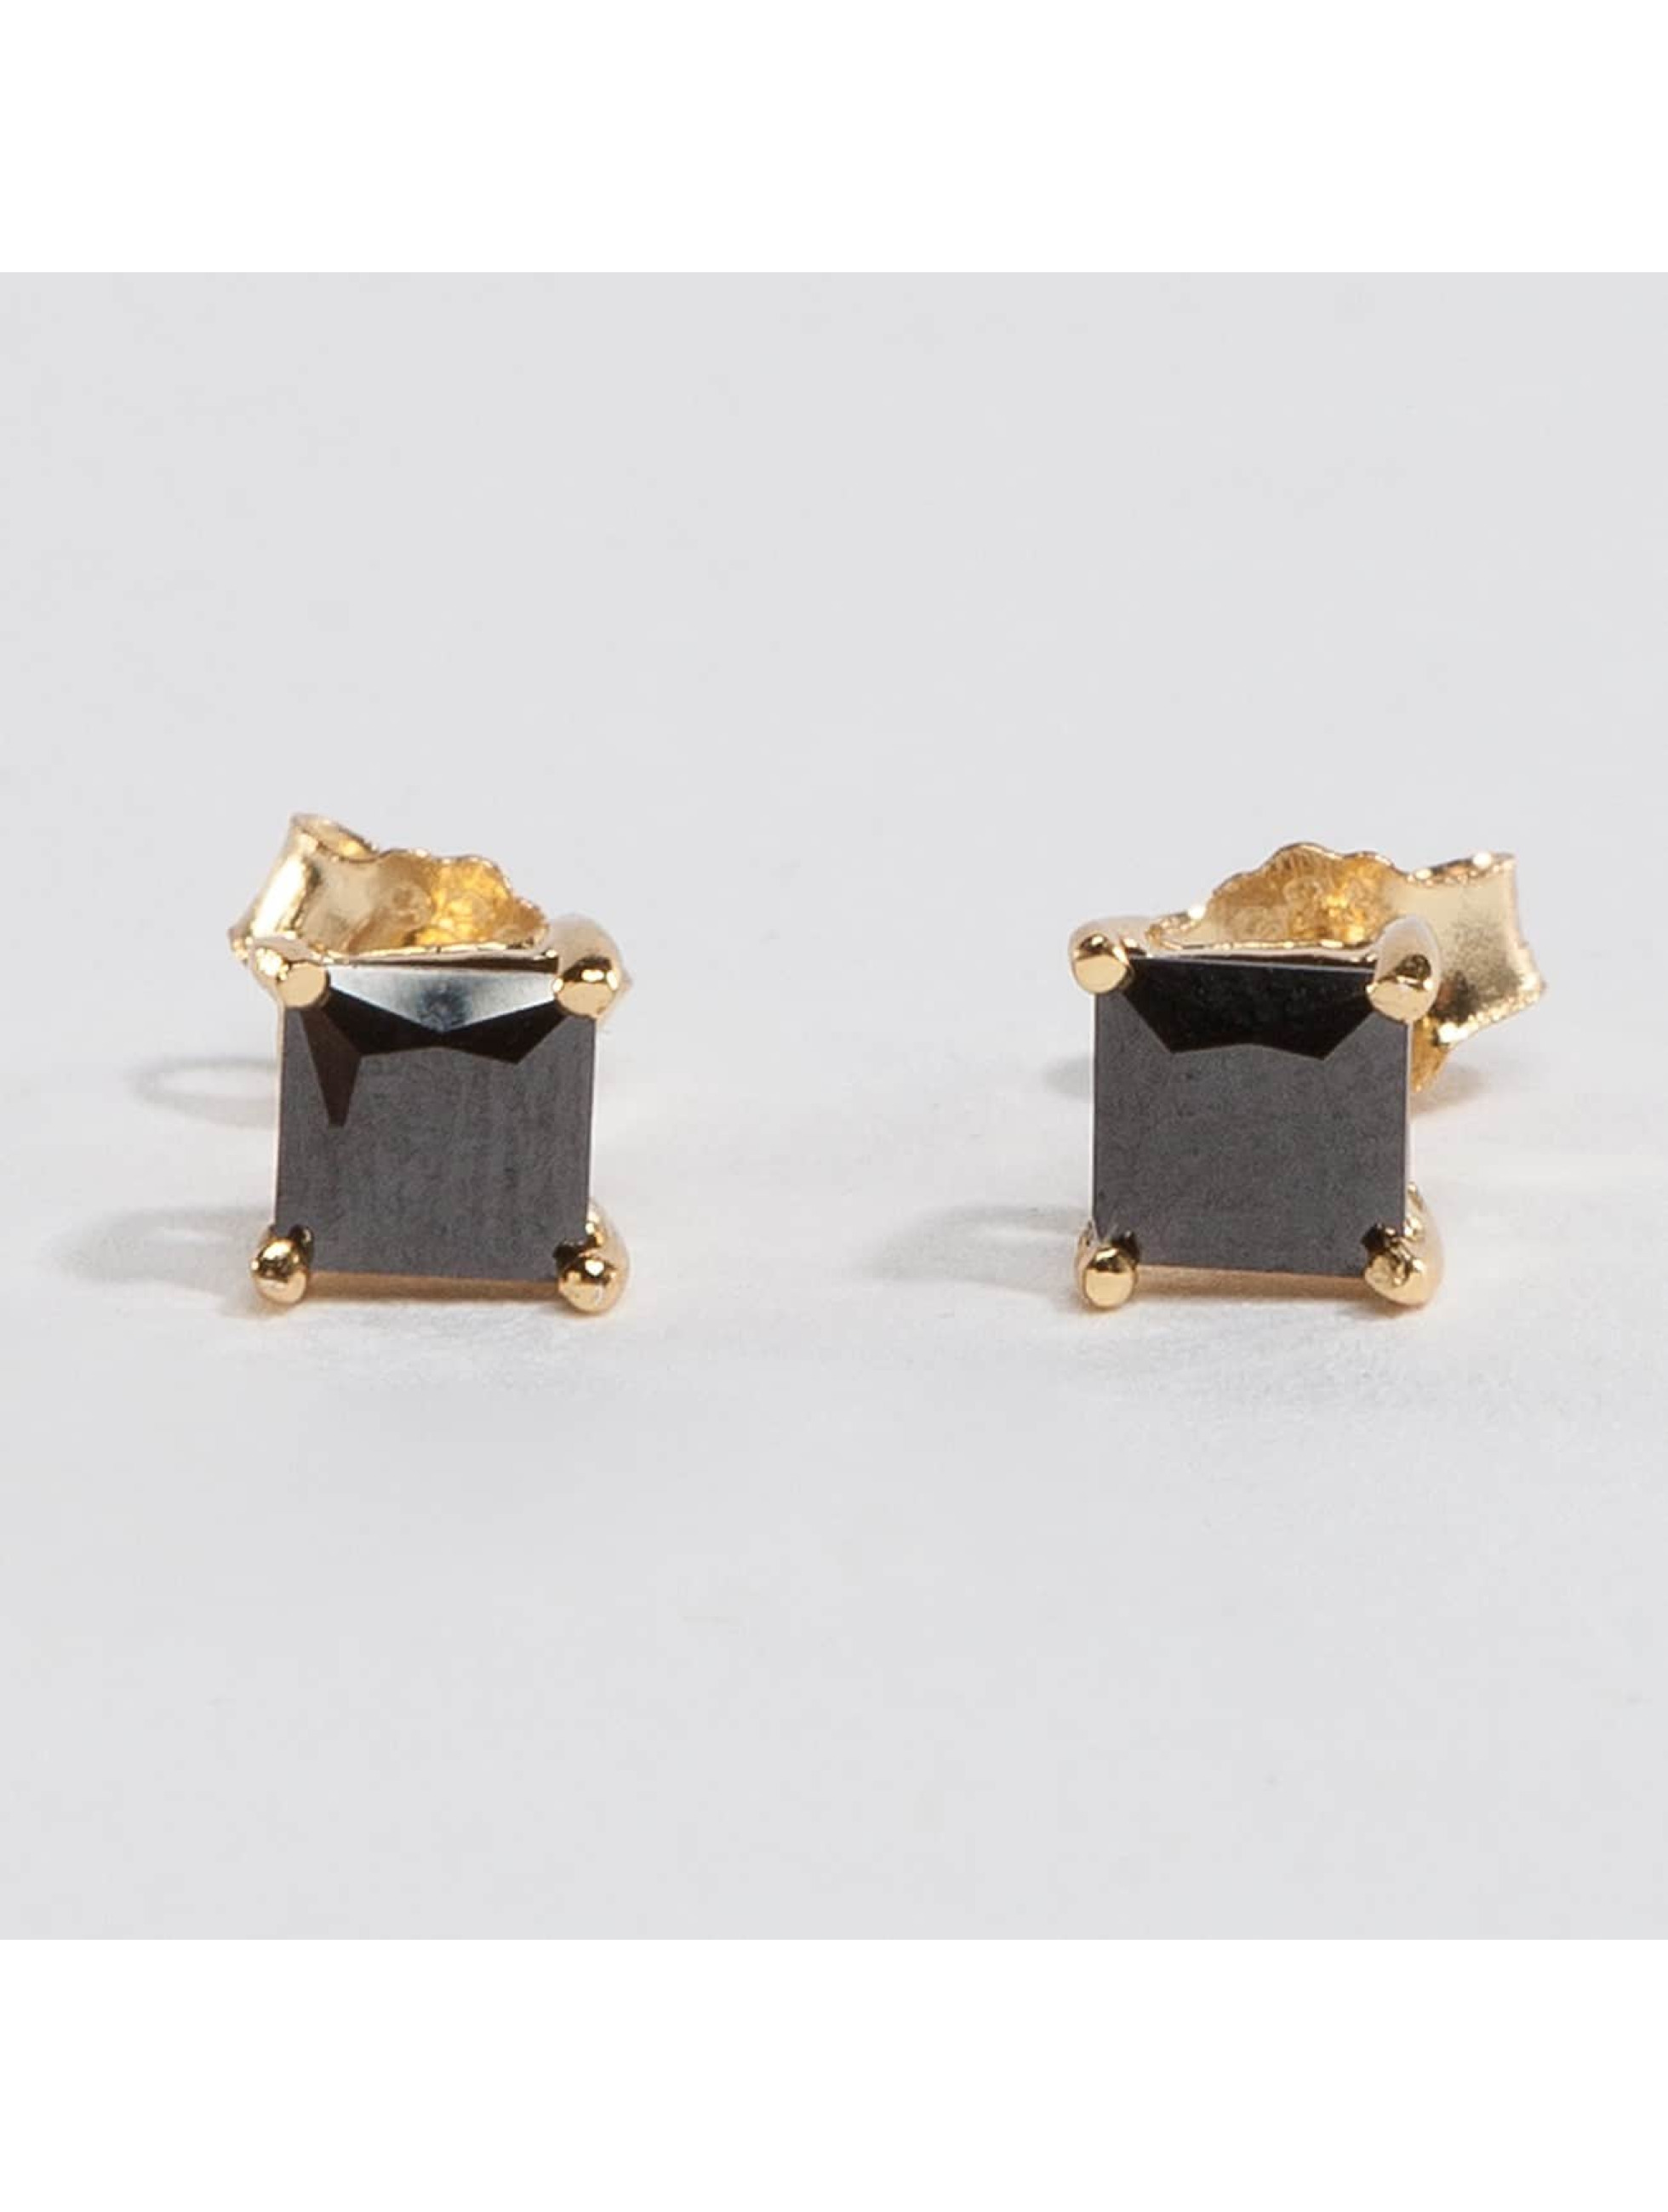 KING ICE Earring Gold_Plated 4mm 925 Sterling_Silver CZ Princess Cut gold colored